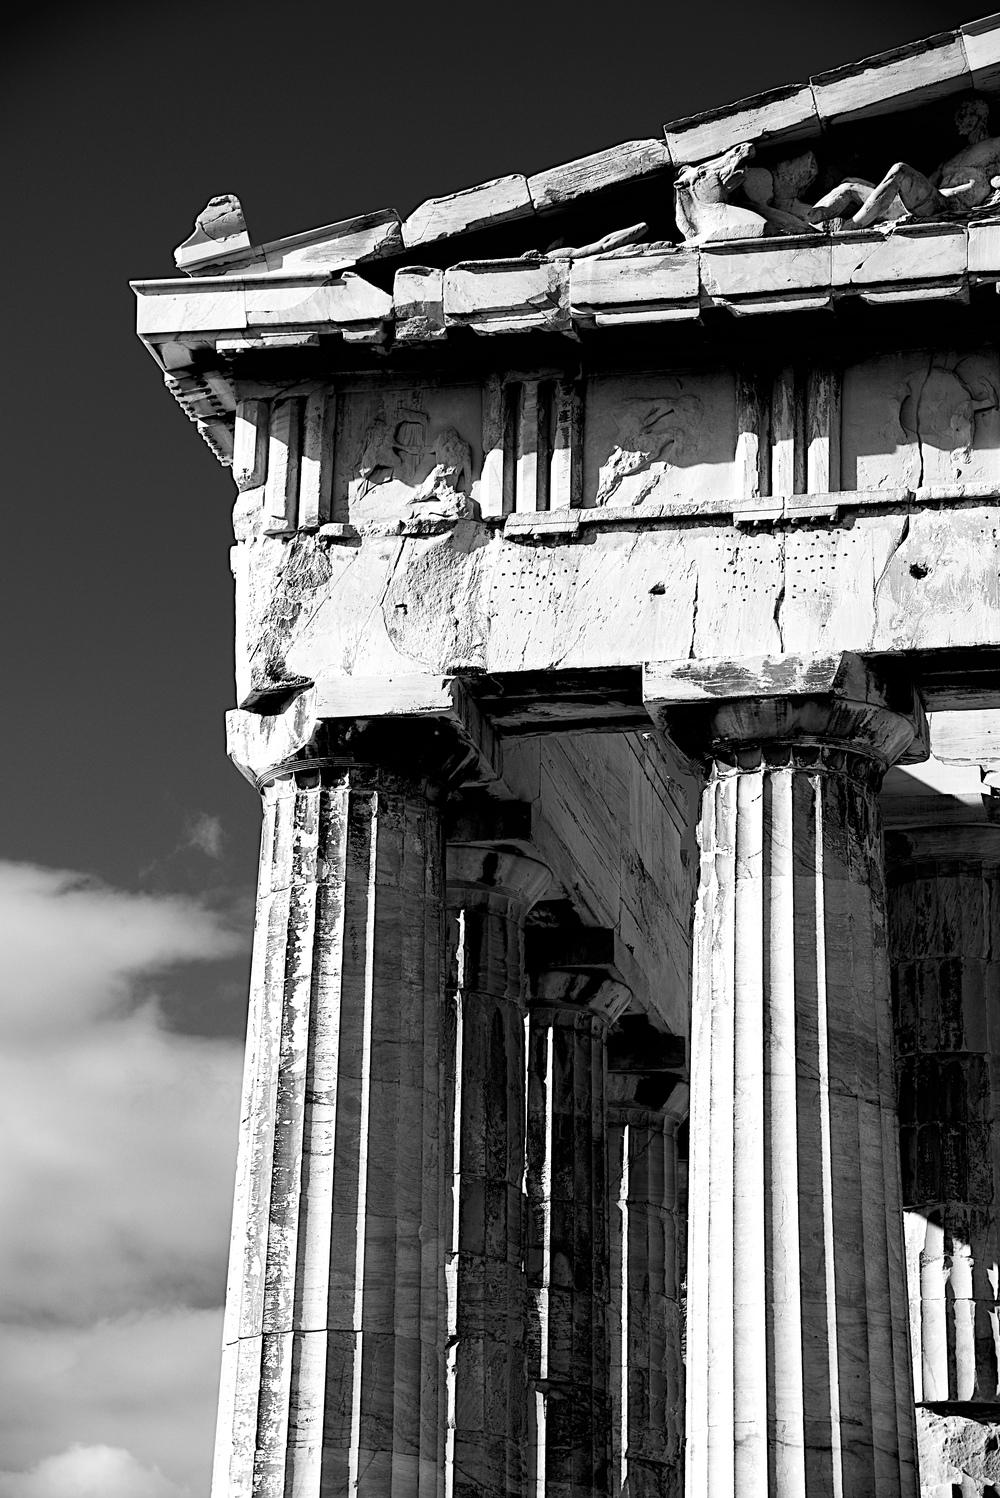 Mono marble columns and pediment of Parthenon.jpg